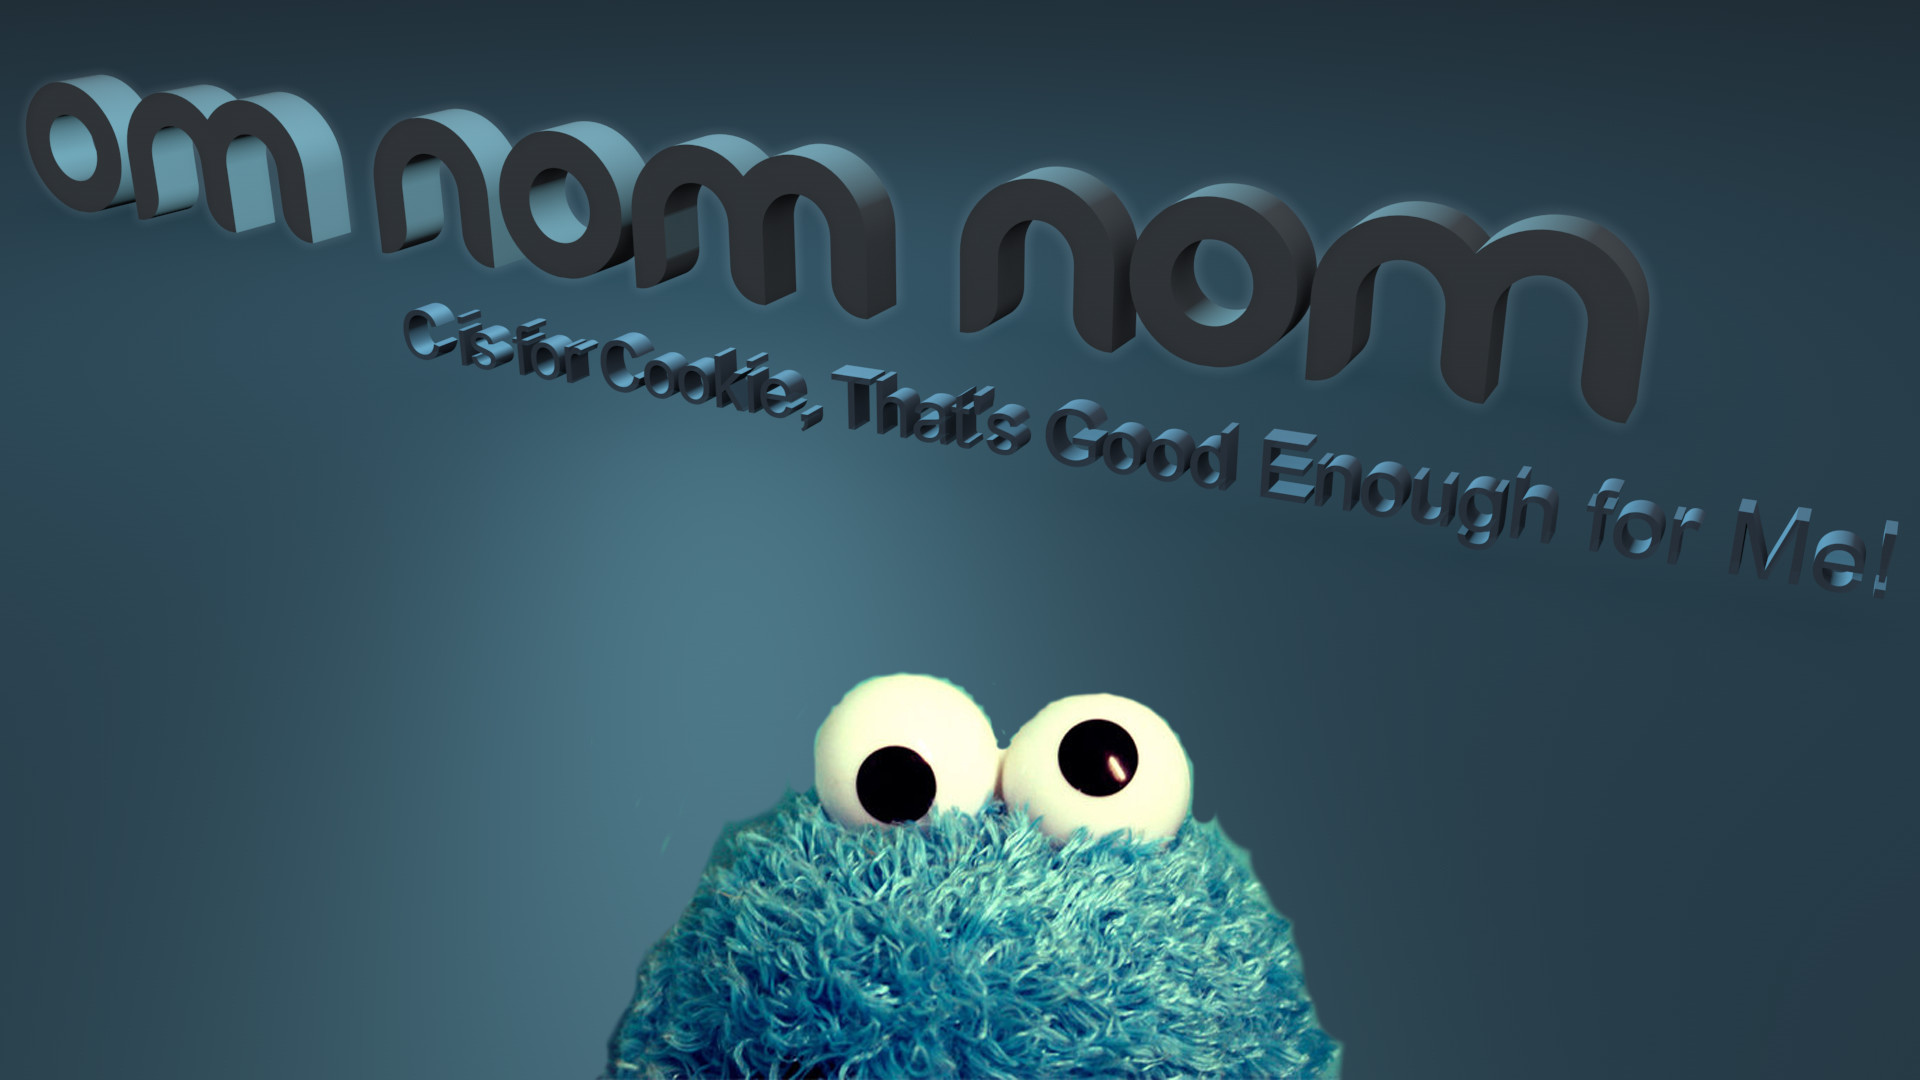 Cookie monster backgrounds 62 images - Cookie monster wallpaper ...